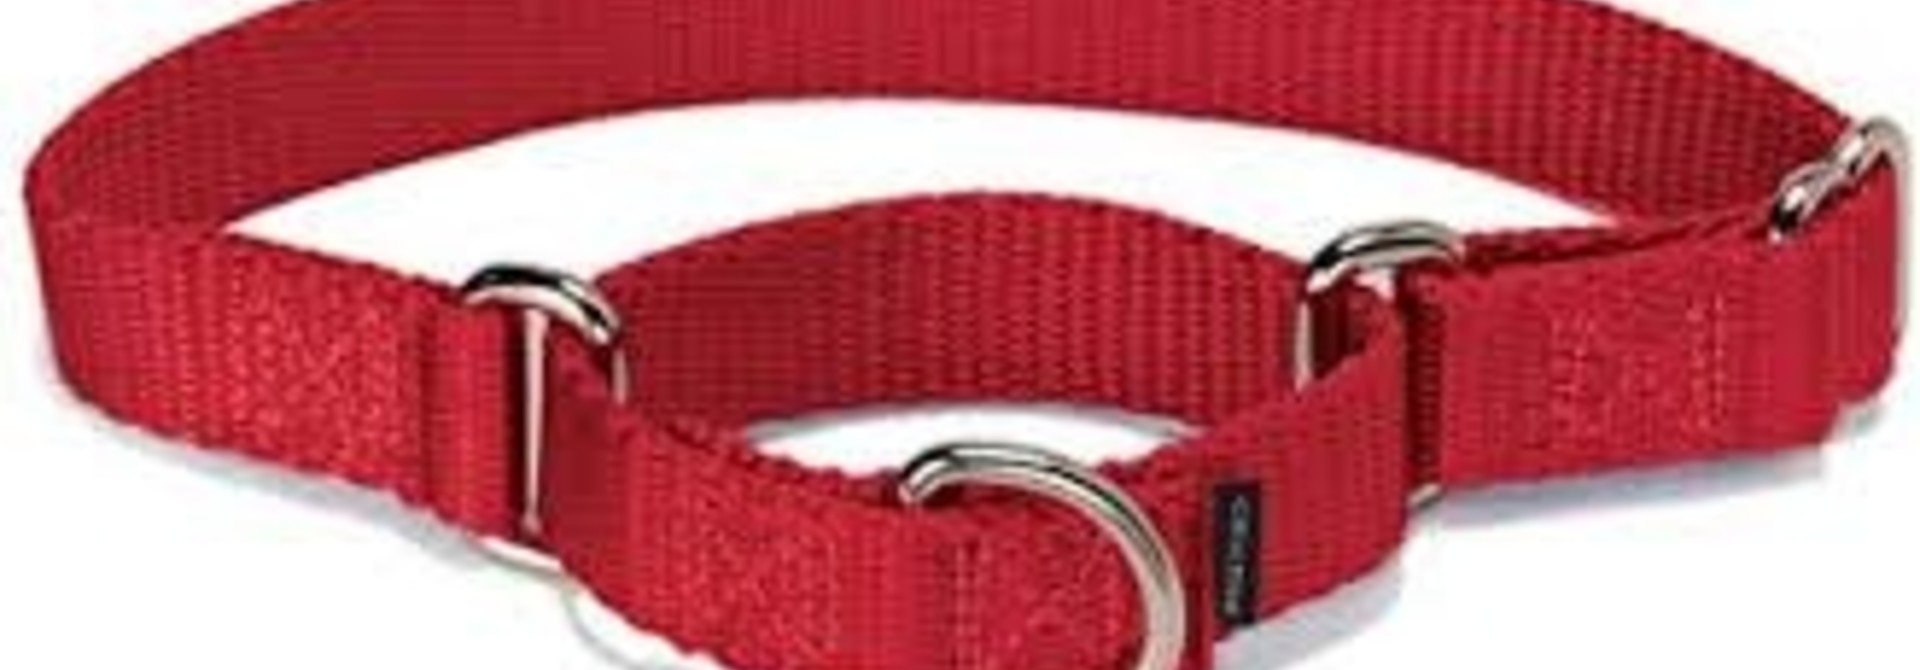 """1"""" Wide All-Webbing Martingale Style Nylon Dog Collar Red 30"""""""